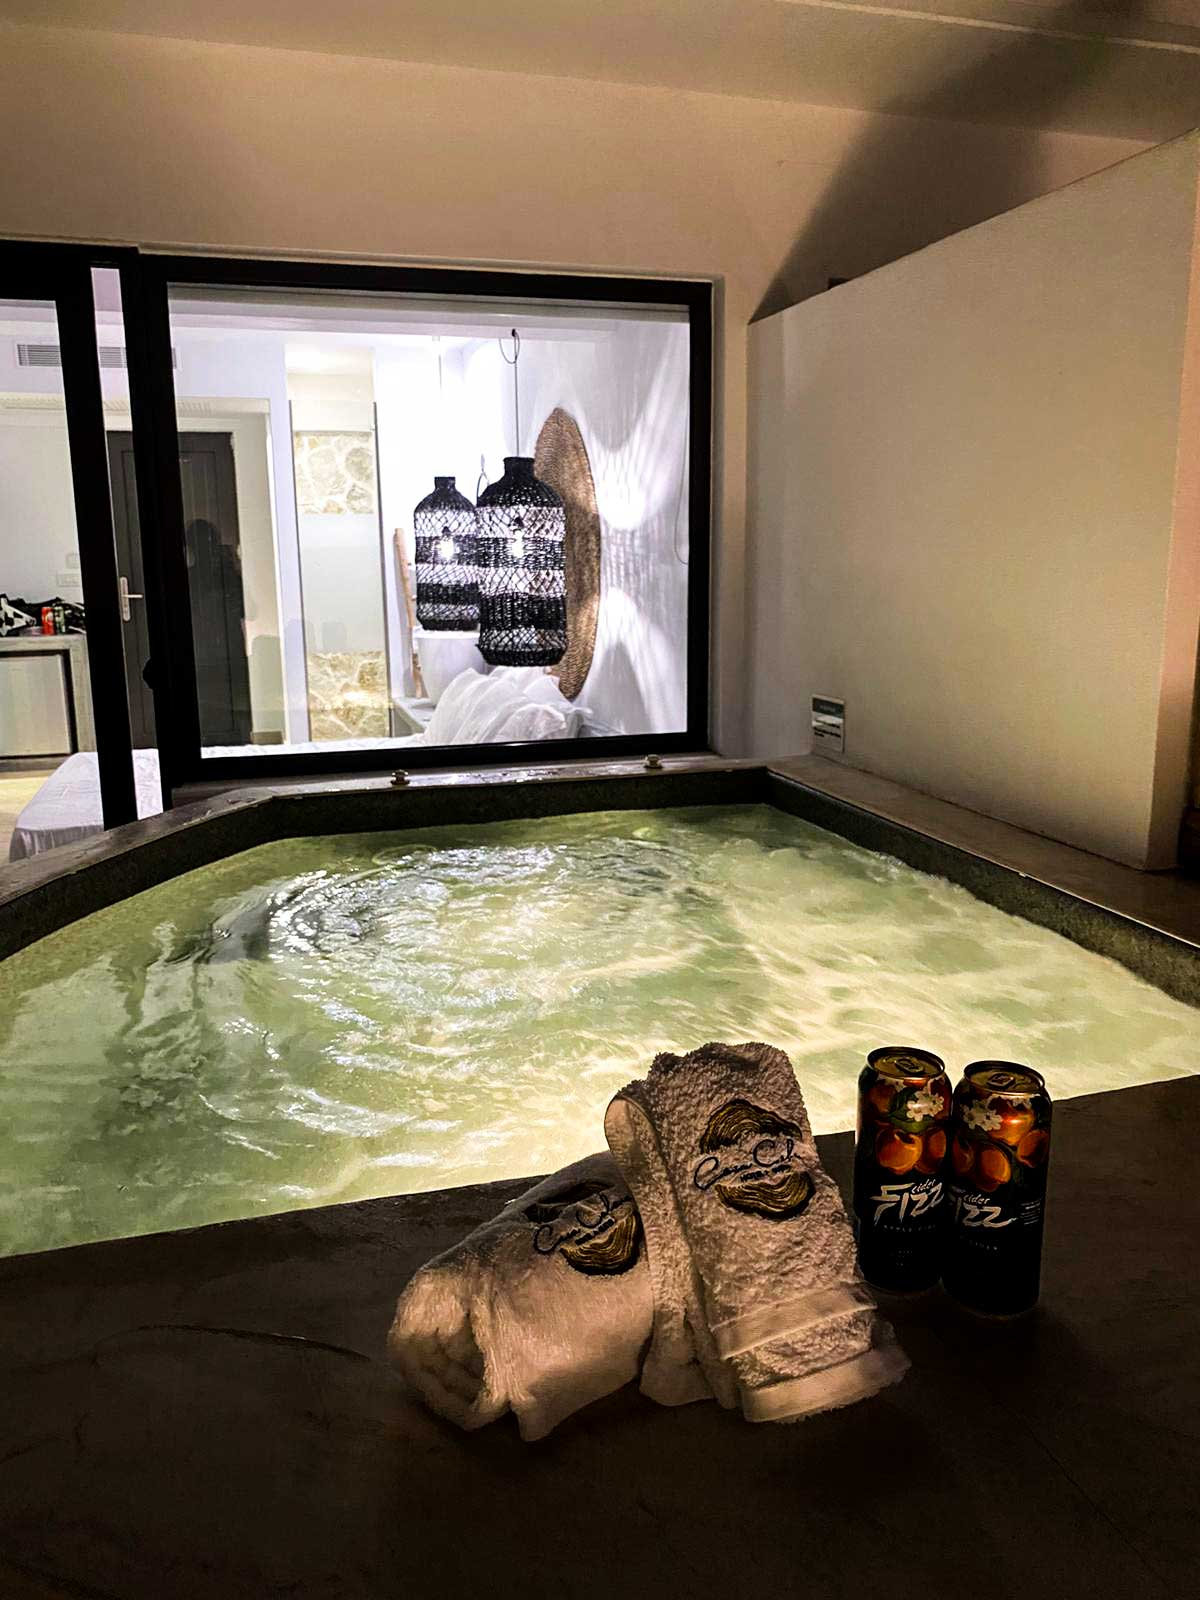 privat Jacuzzi am Zimmer